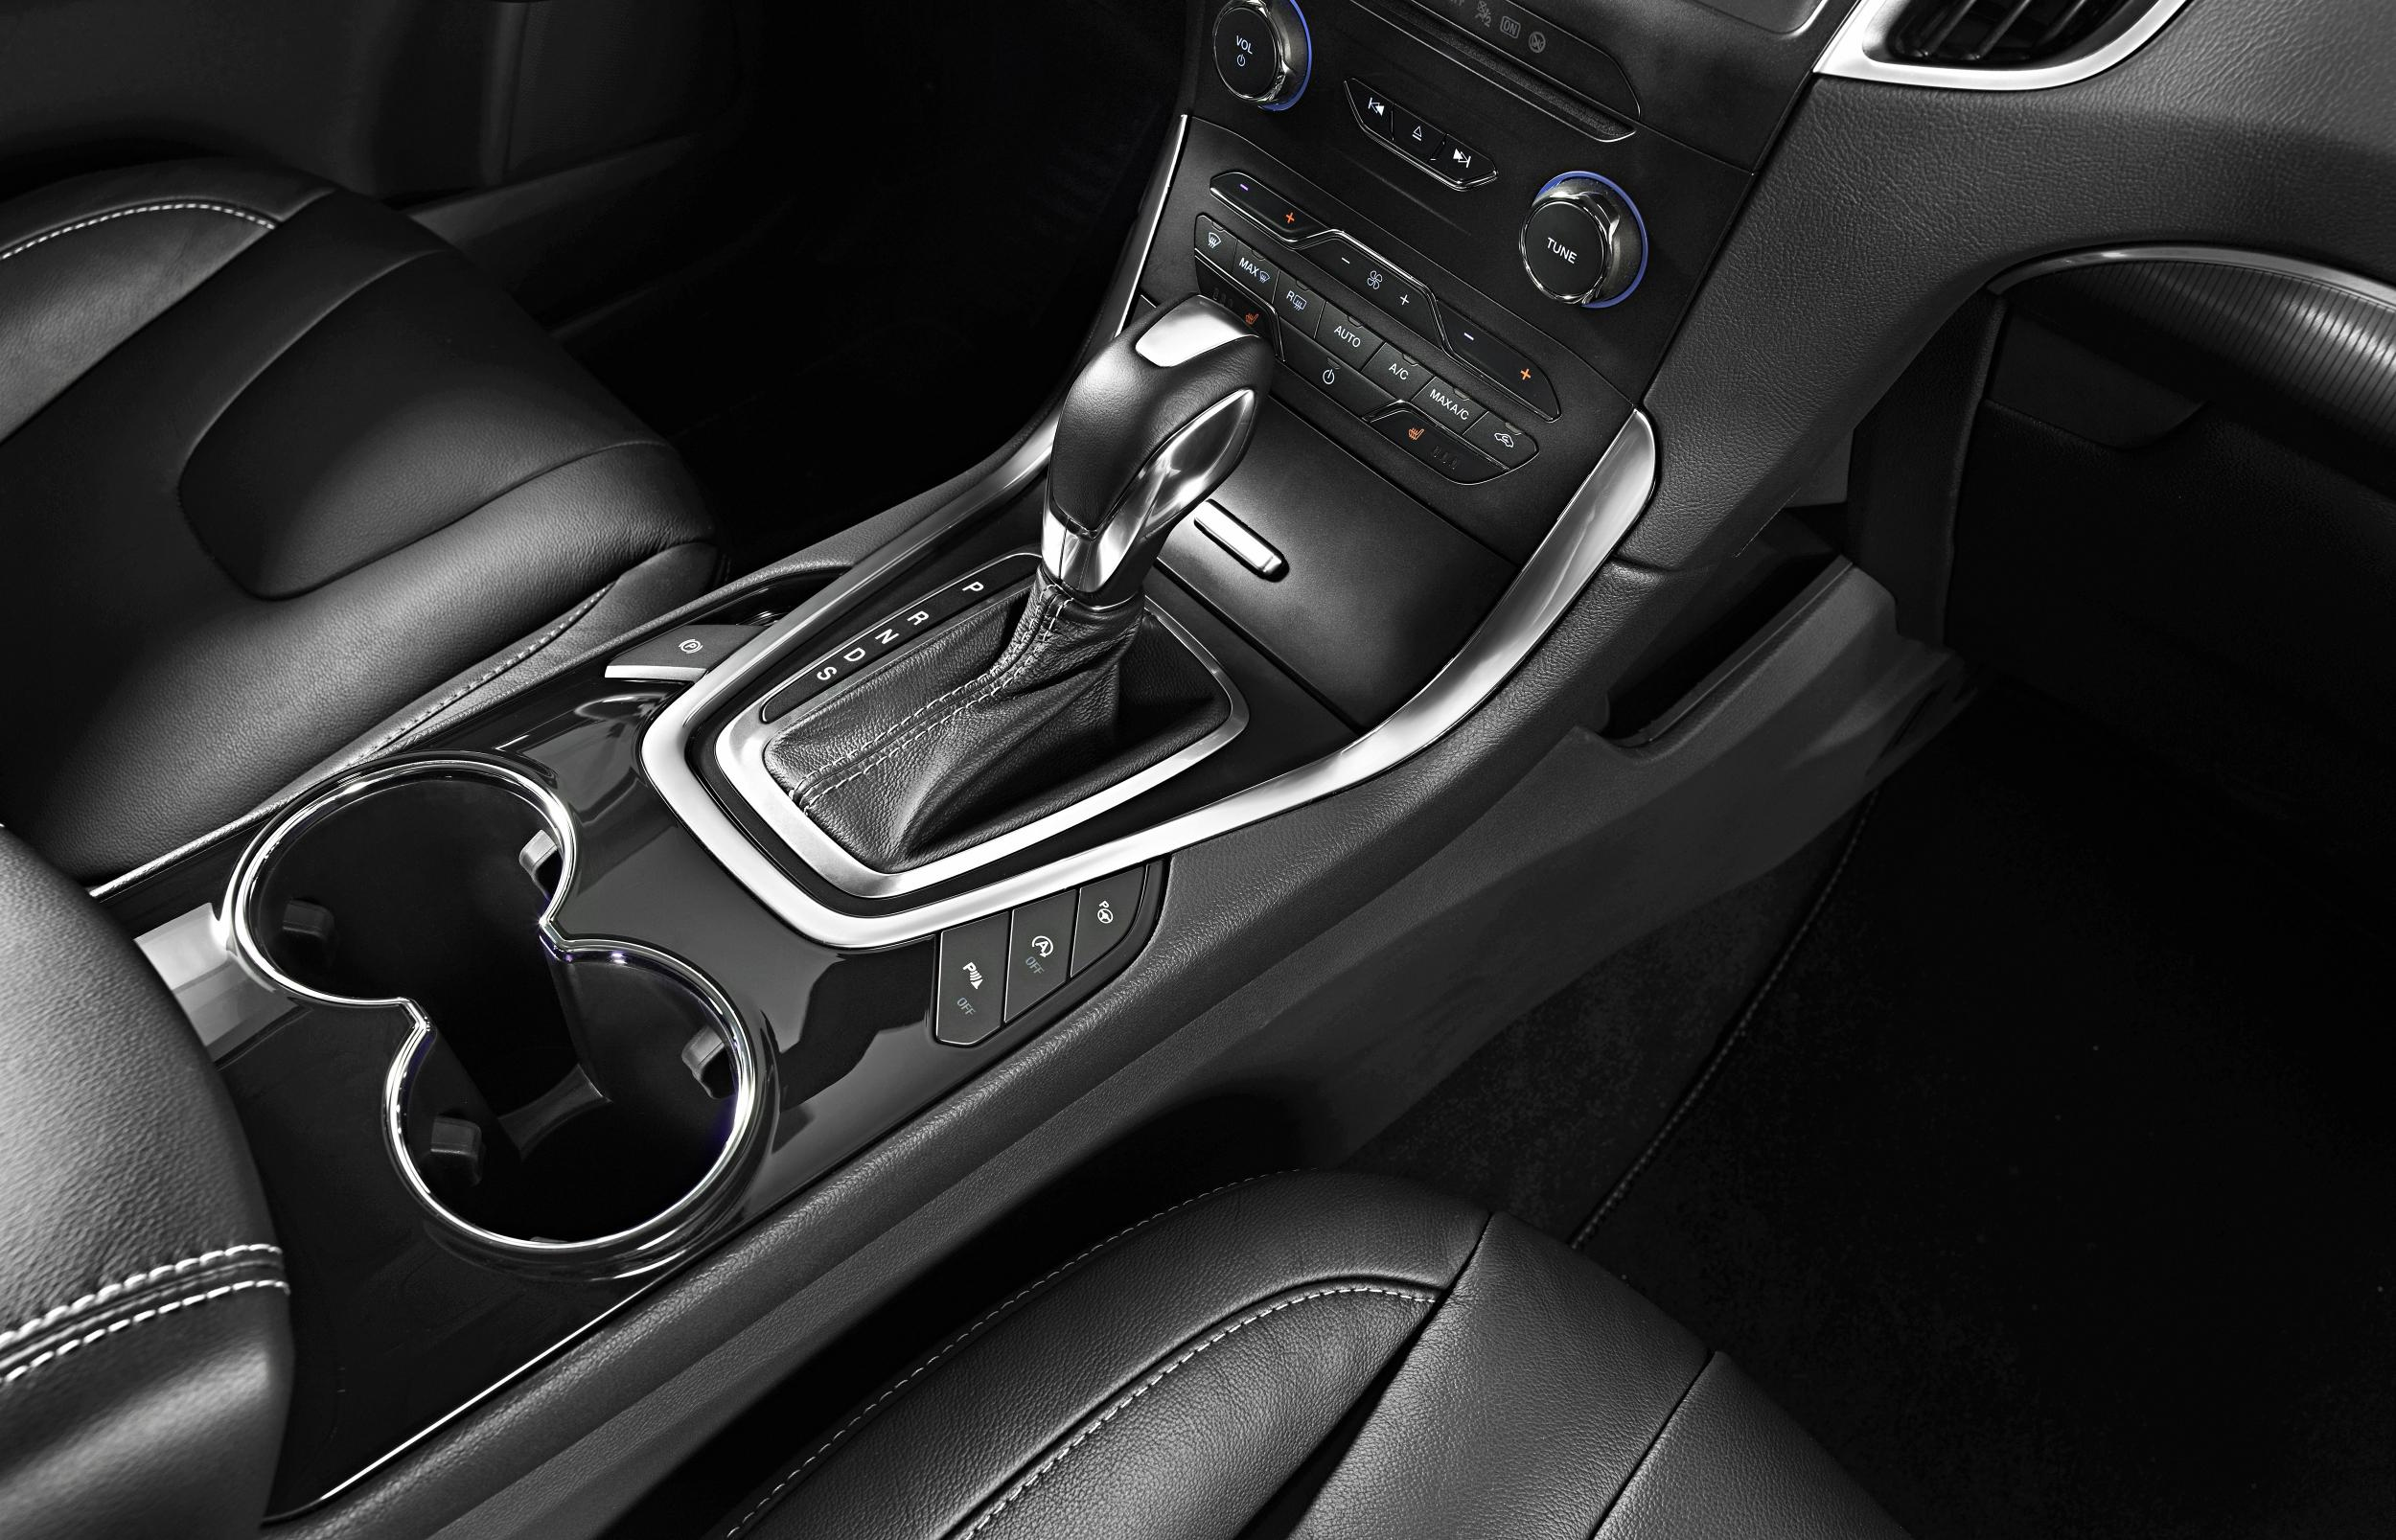 2015 ford s max detailed ahead of paris motor show debut autoevolution. Black Bedroom Furniture Sets. Home Design Ideas